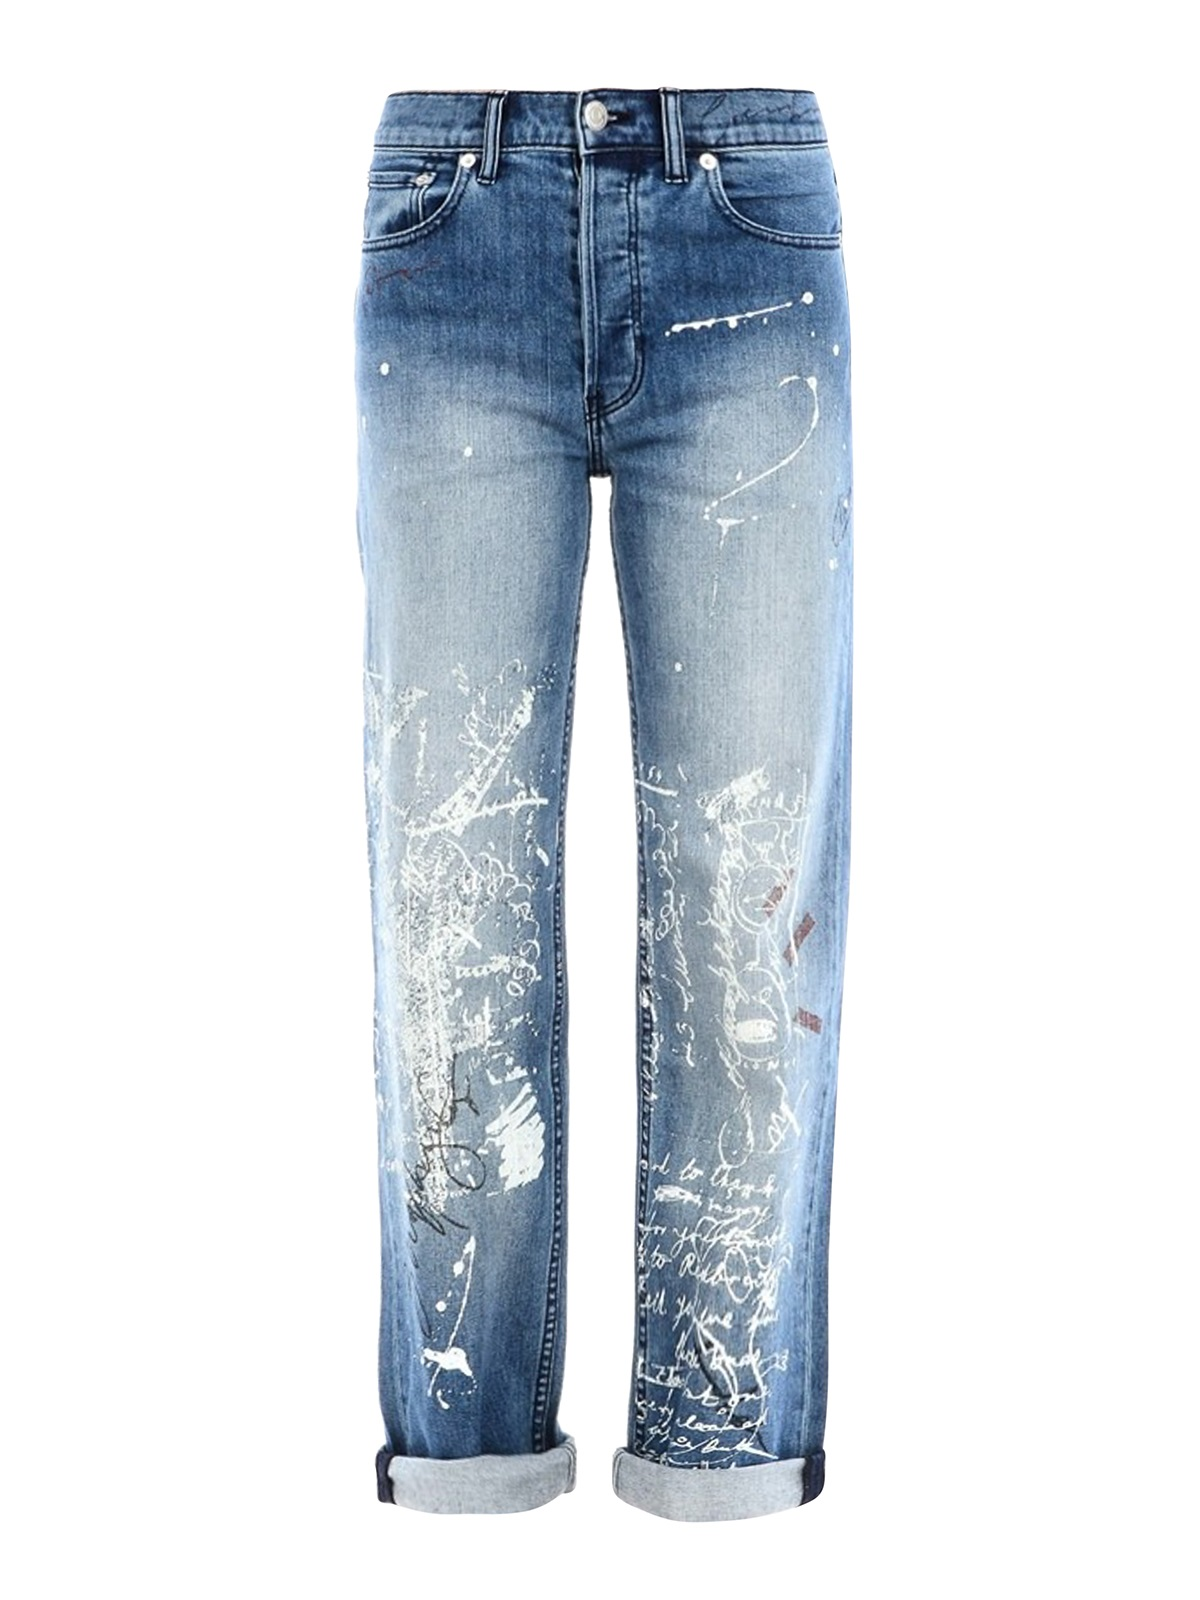 Burberry Ladies Graffiti Straight High-rise Jeans In Blue